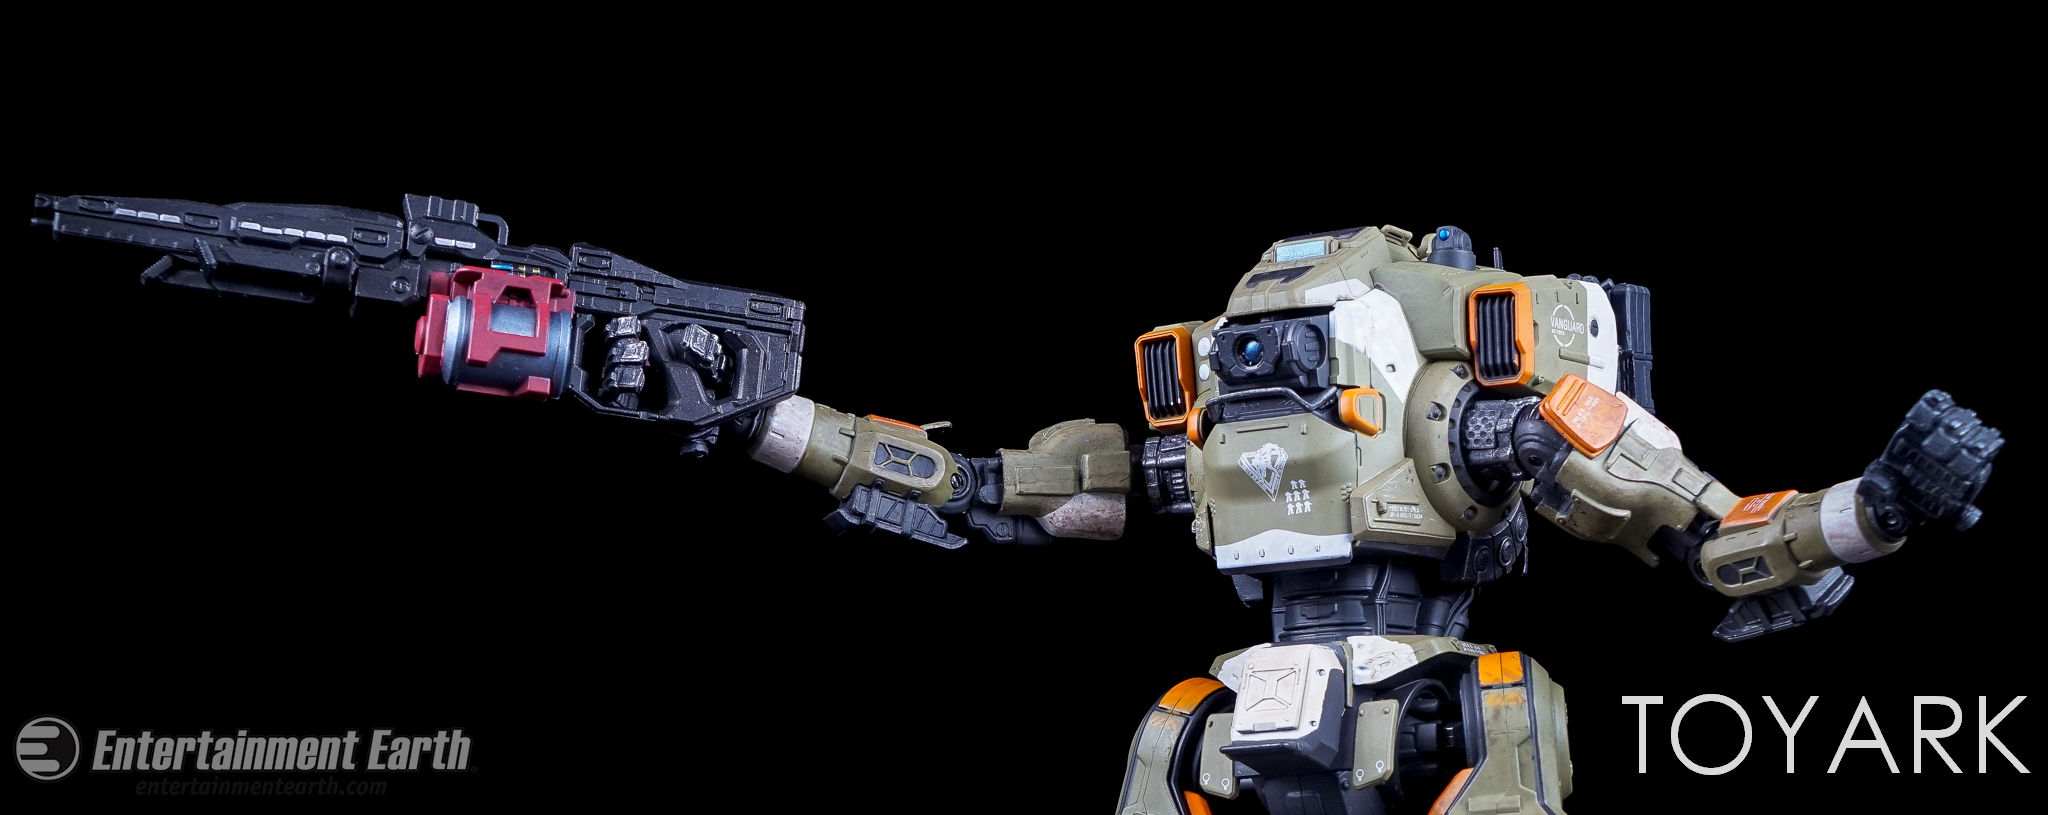 http://news.toyark.com/wp-content/uploads/sites/4/2017/04/McFarlane-BT-7274-Titanfall-2-Figure-026.jpg